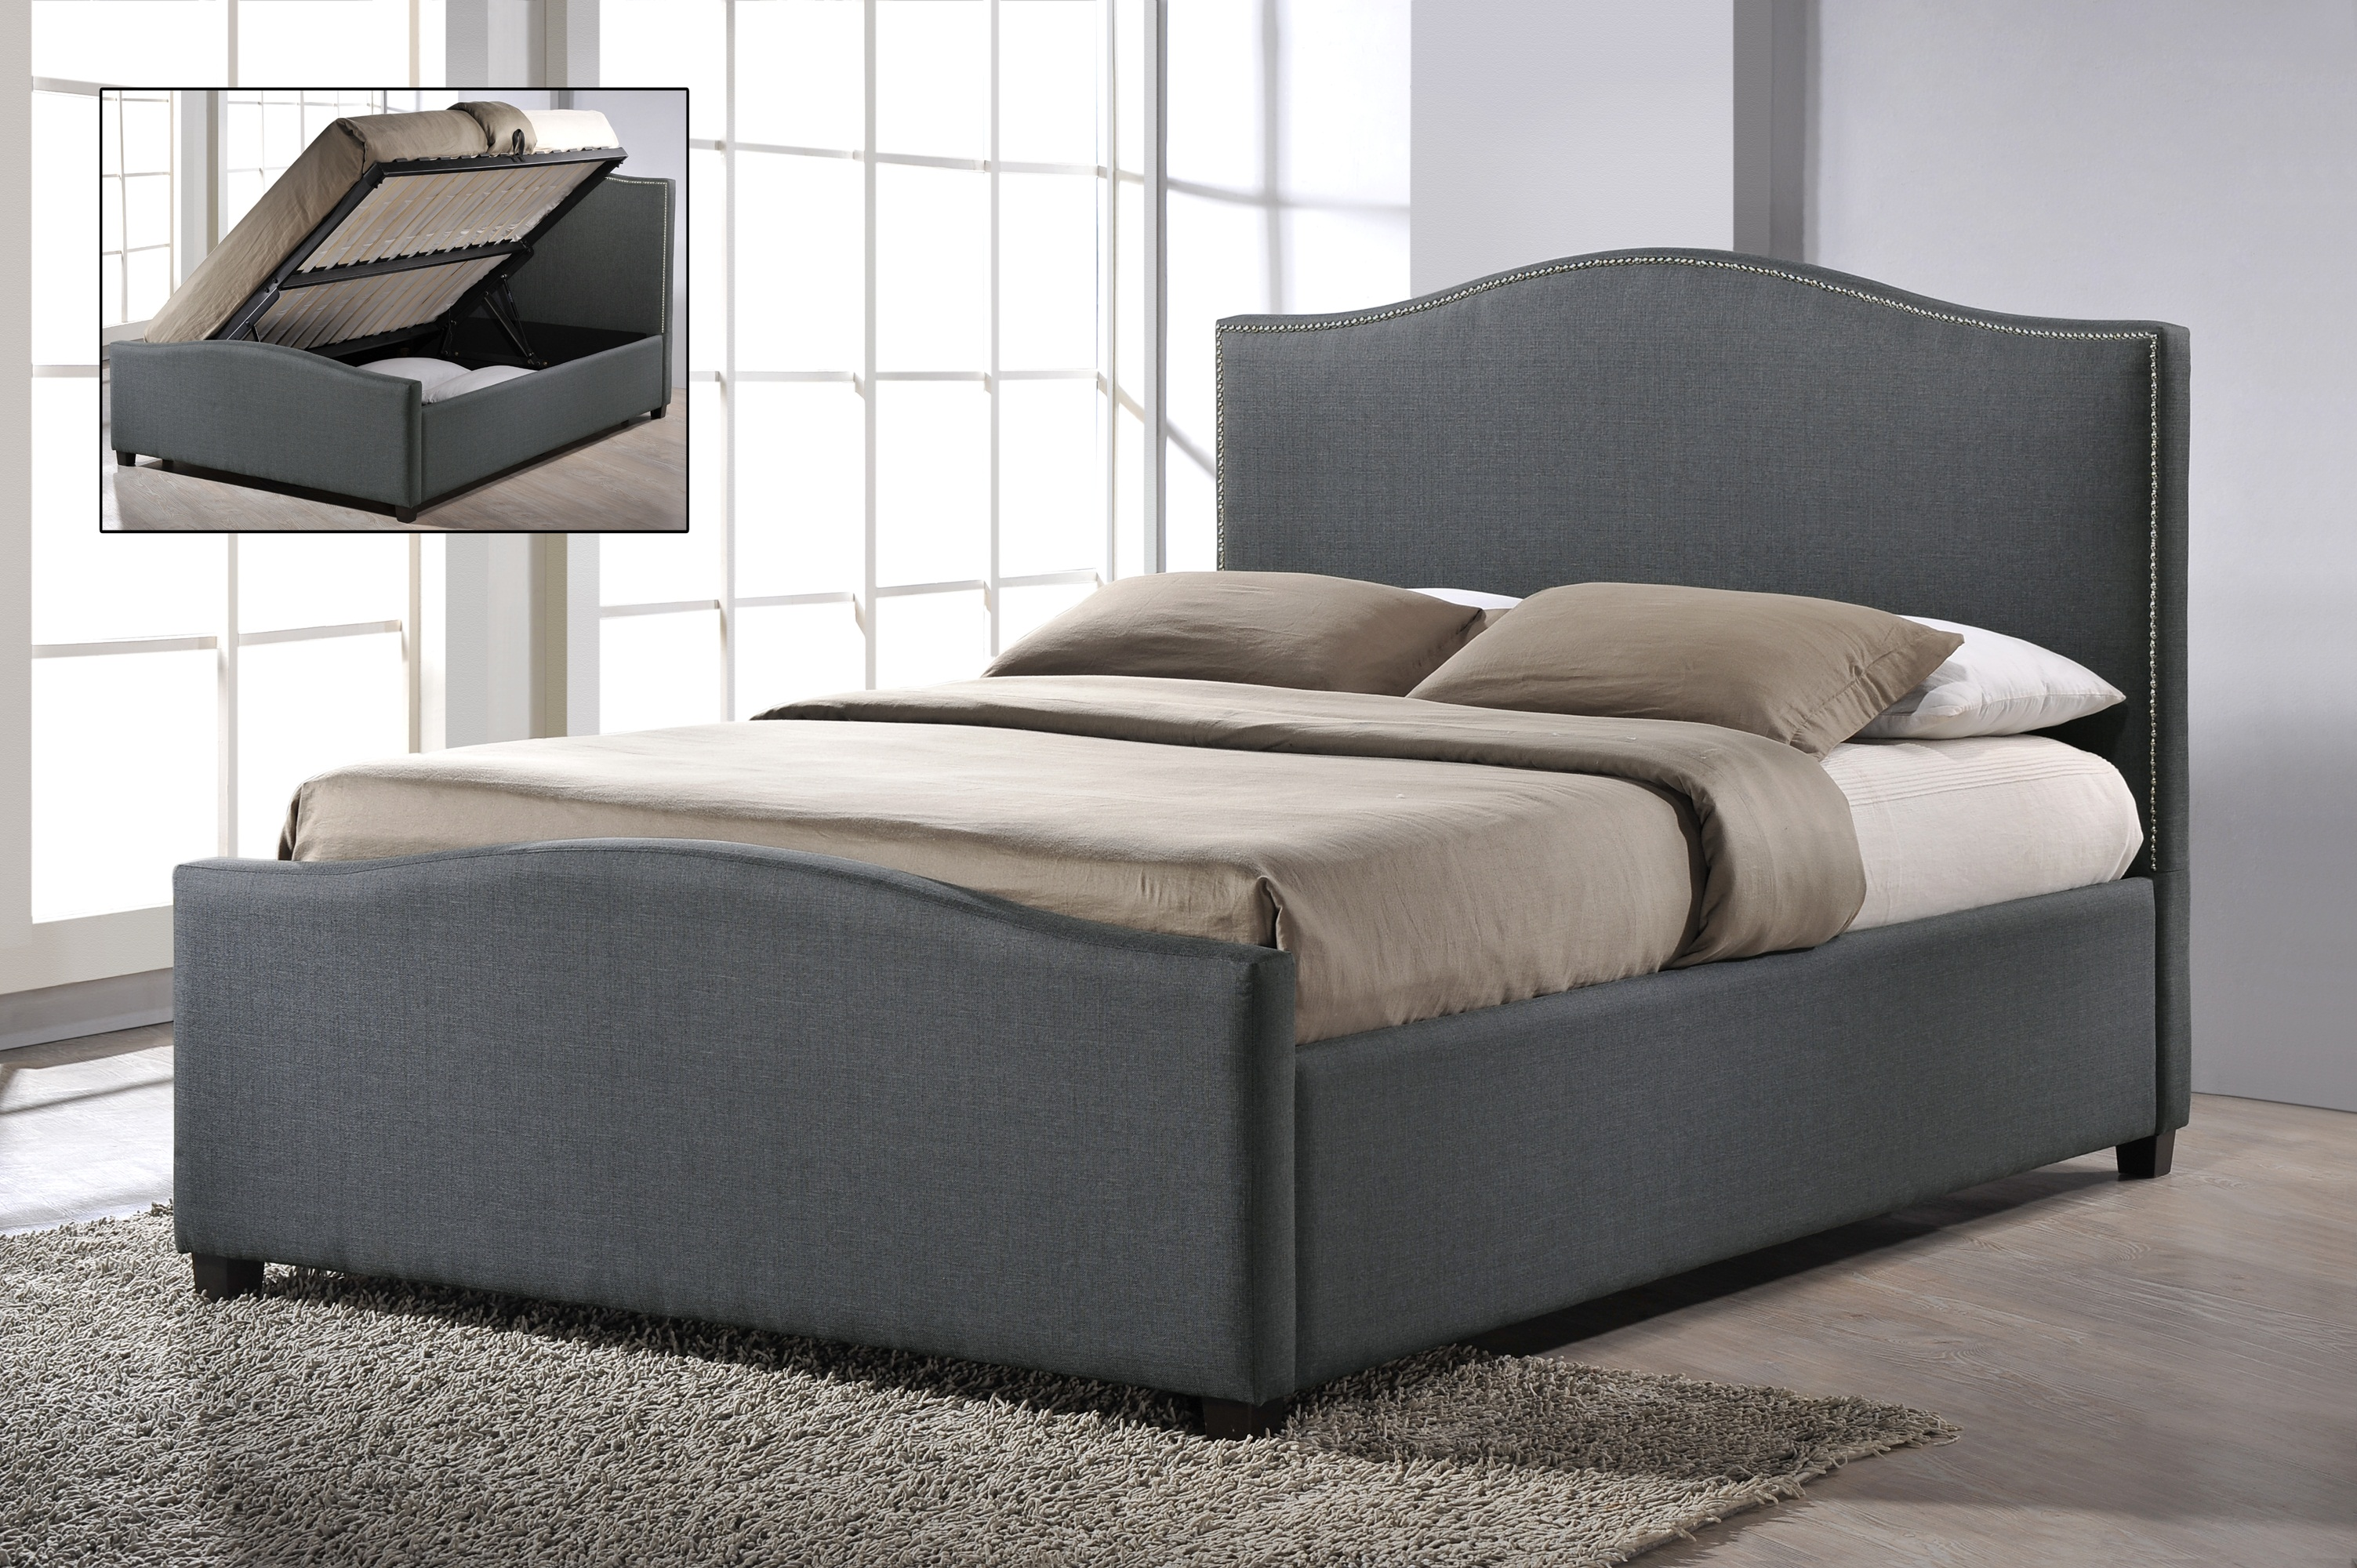 Cool Chrome Studded Grey Fabric Side Ottoman Style Bed Frame Small Double 4Ft Free Next Day Delivery Bralicious Painted Fabric Chair Ideas Braliciousco